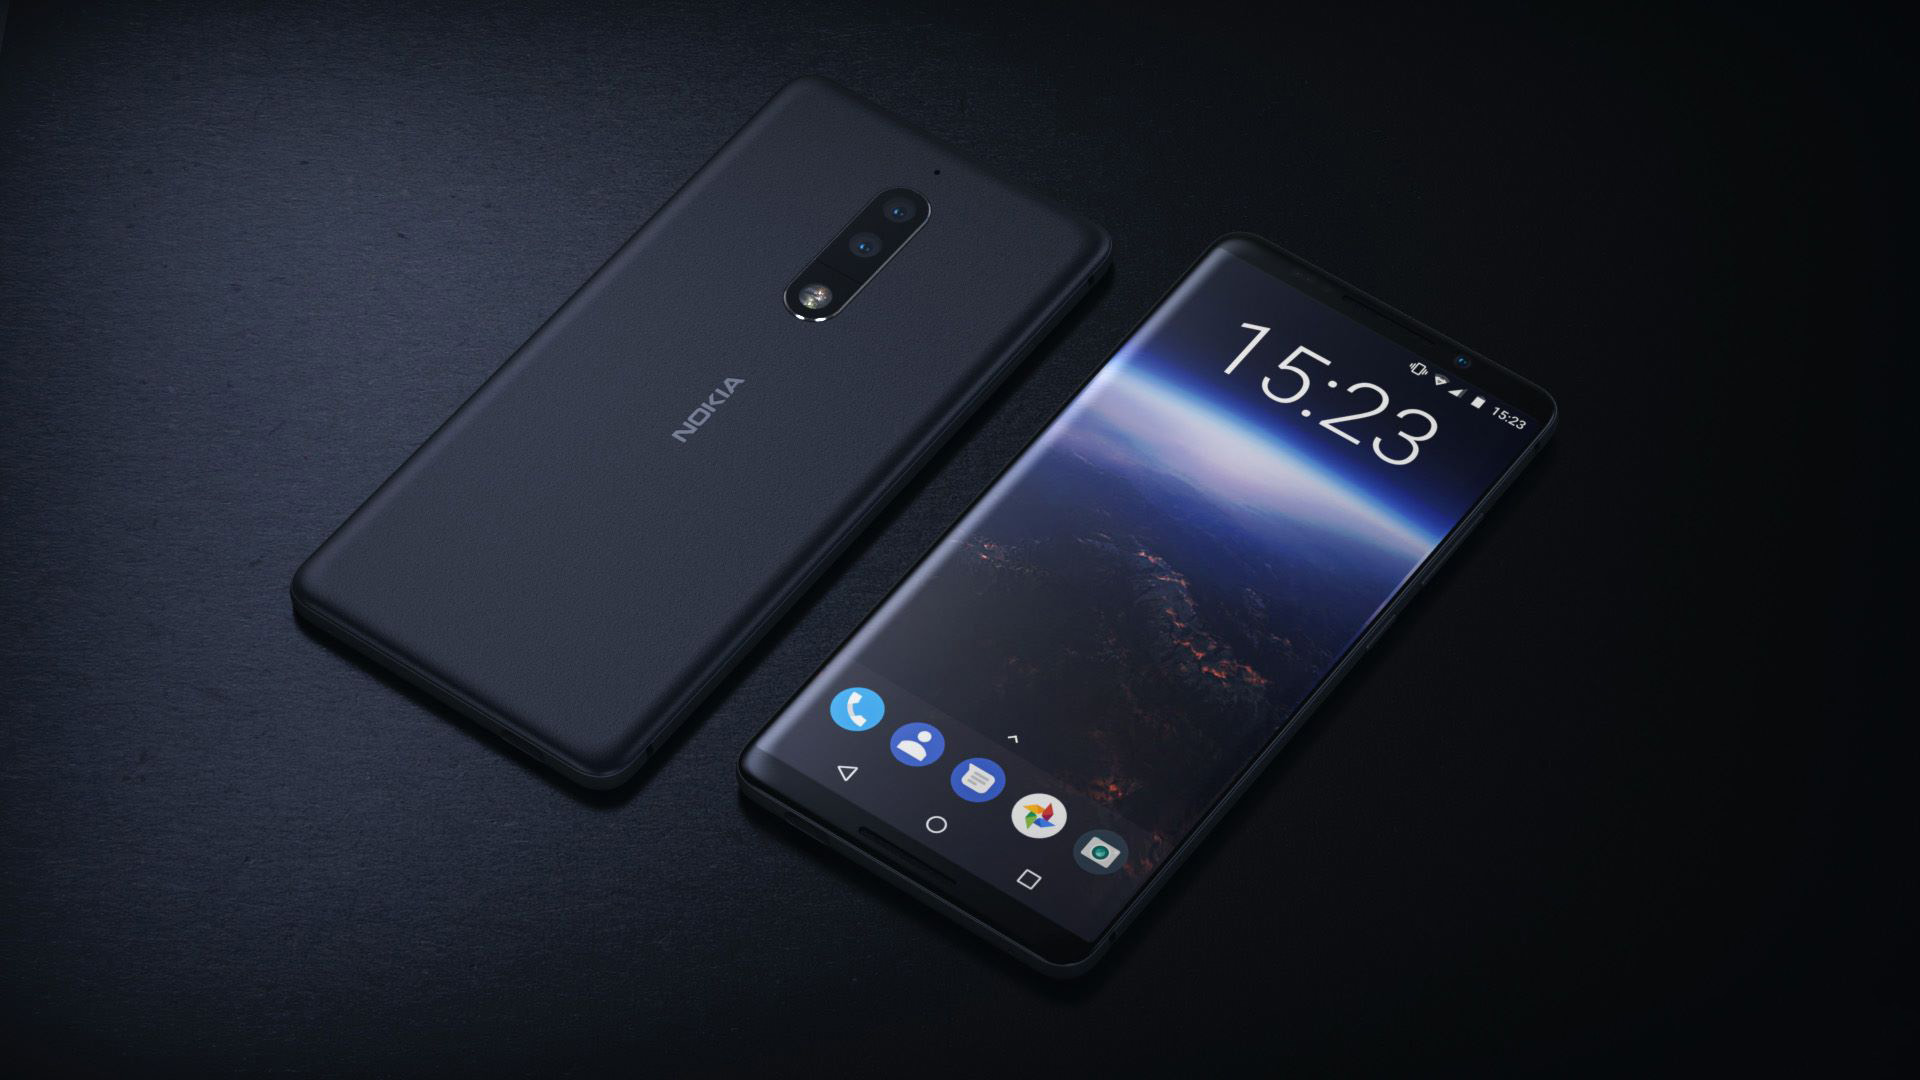 HMD Global's Nokia 6.1 Plus to go on sale today via Flipkart